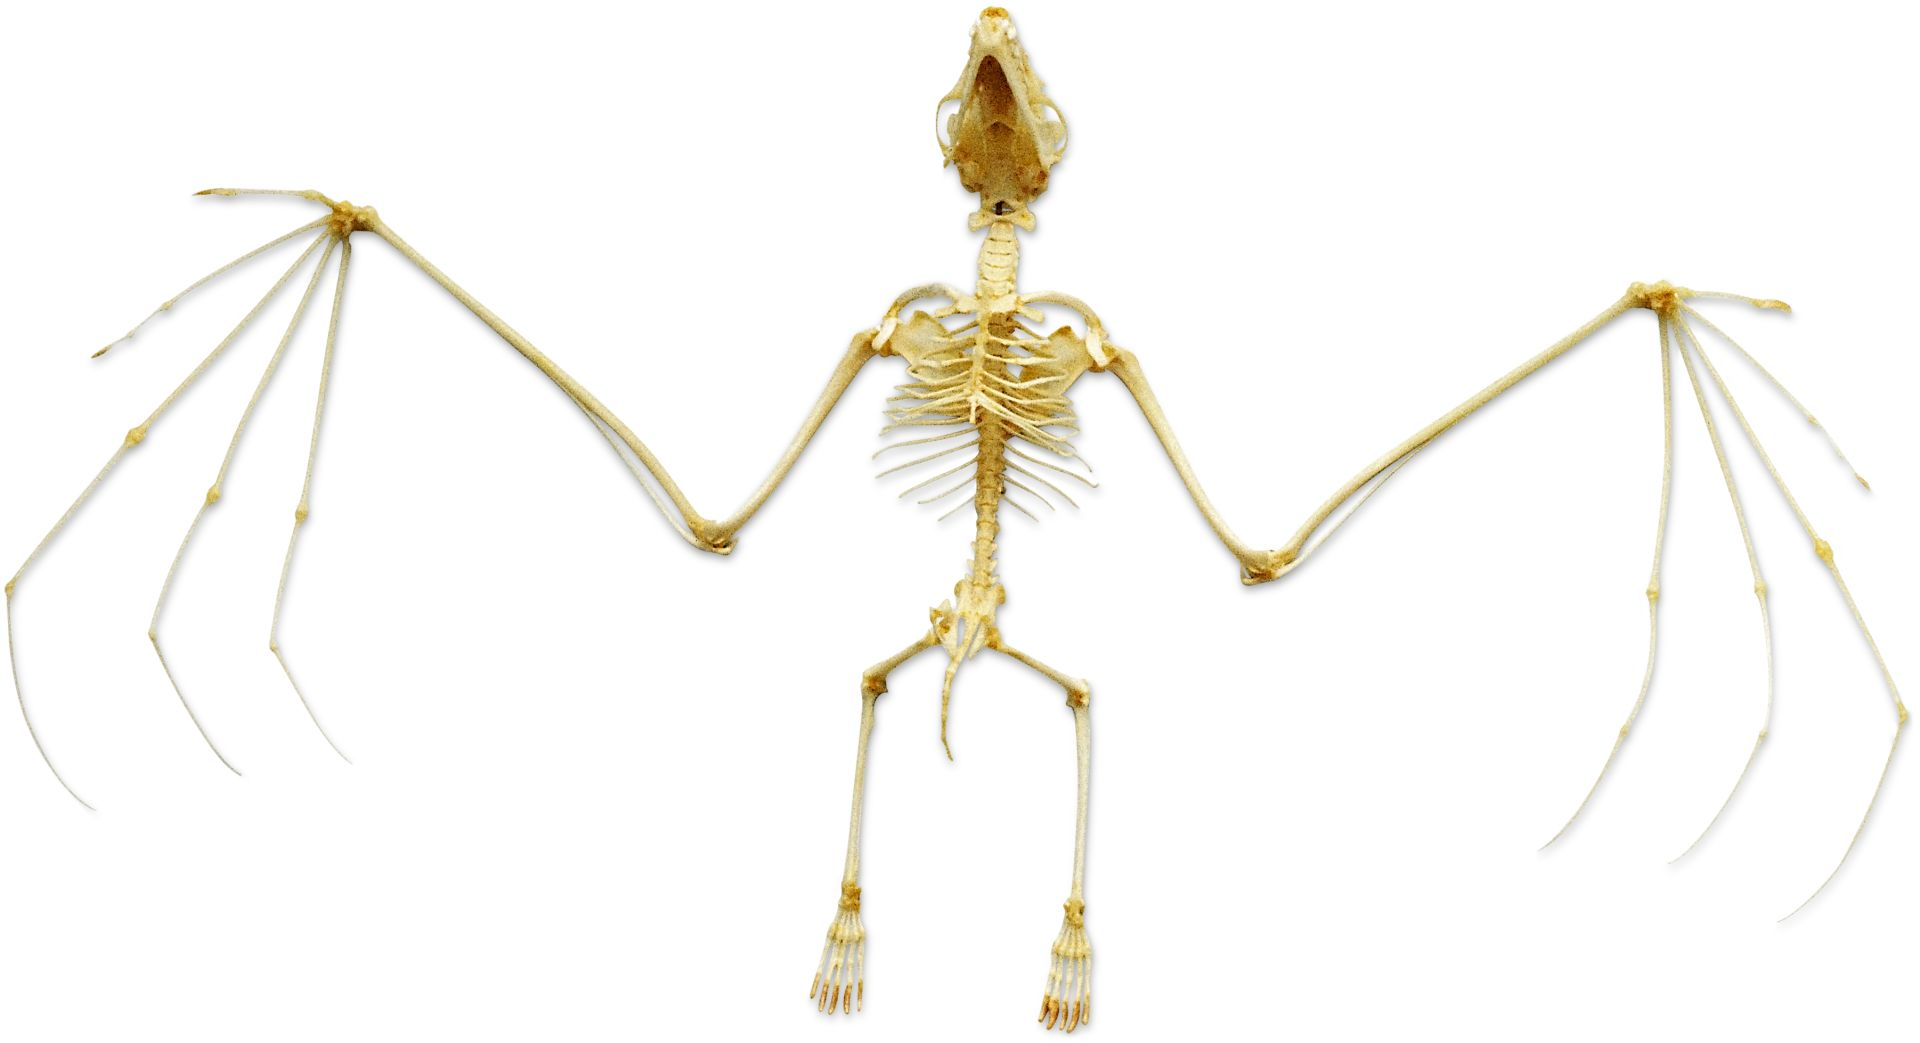 Bat Skeleton | Bat Anatomy | DK Find Out